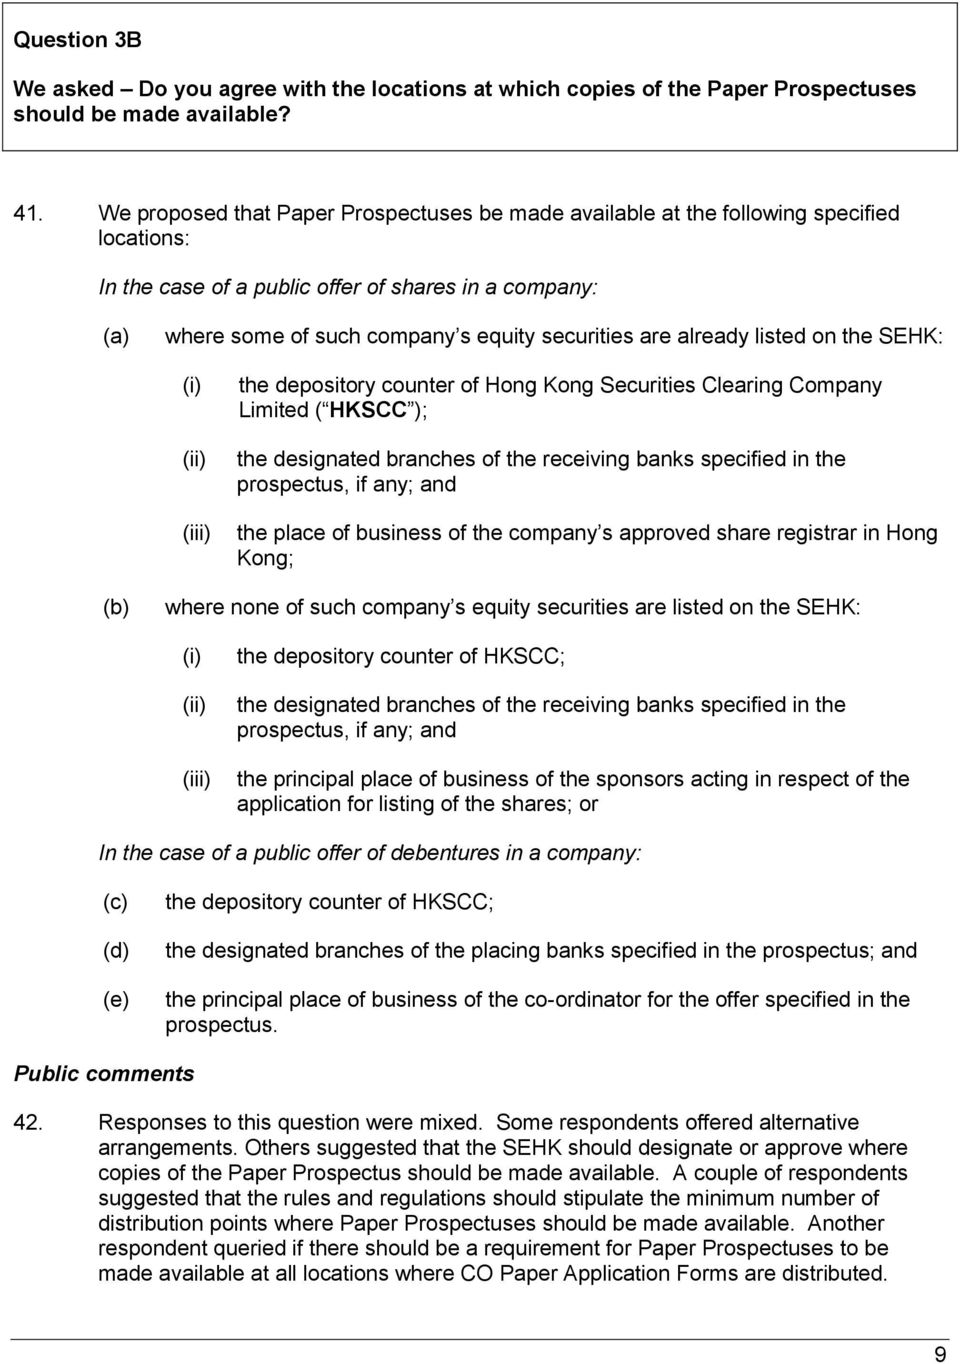 already listed on the SEHK: (i) (ii) (iii) the depository counter of Hong Kong Securities Clearing Company Limited ( HKSCC ); the designated branches of the receiving banks specified in the